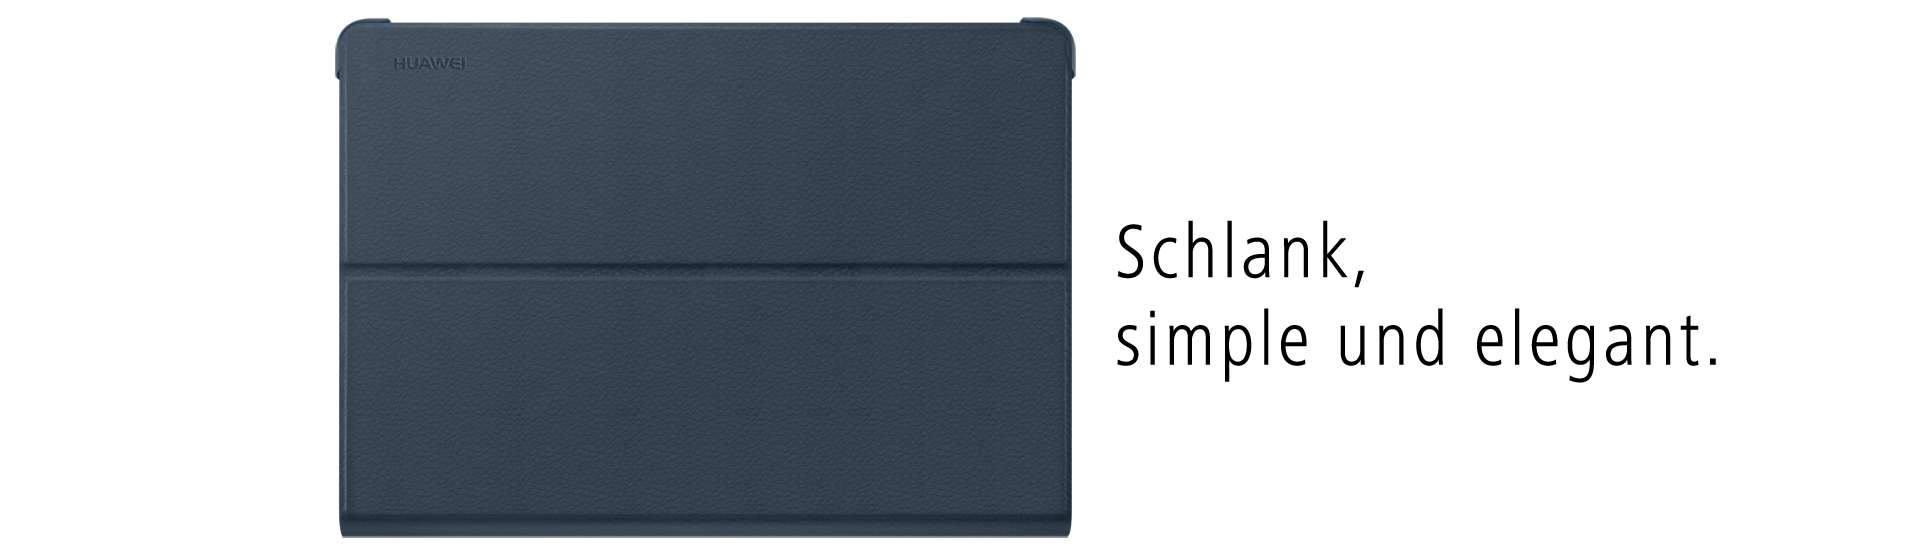 Schlank, simple und elegant.